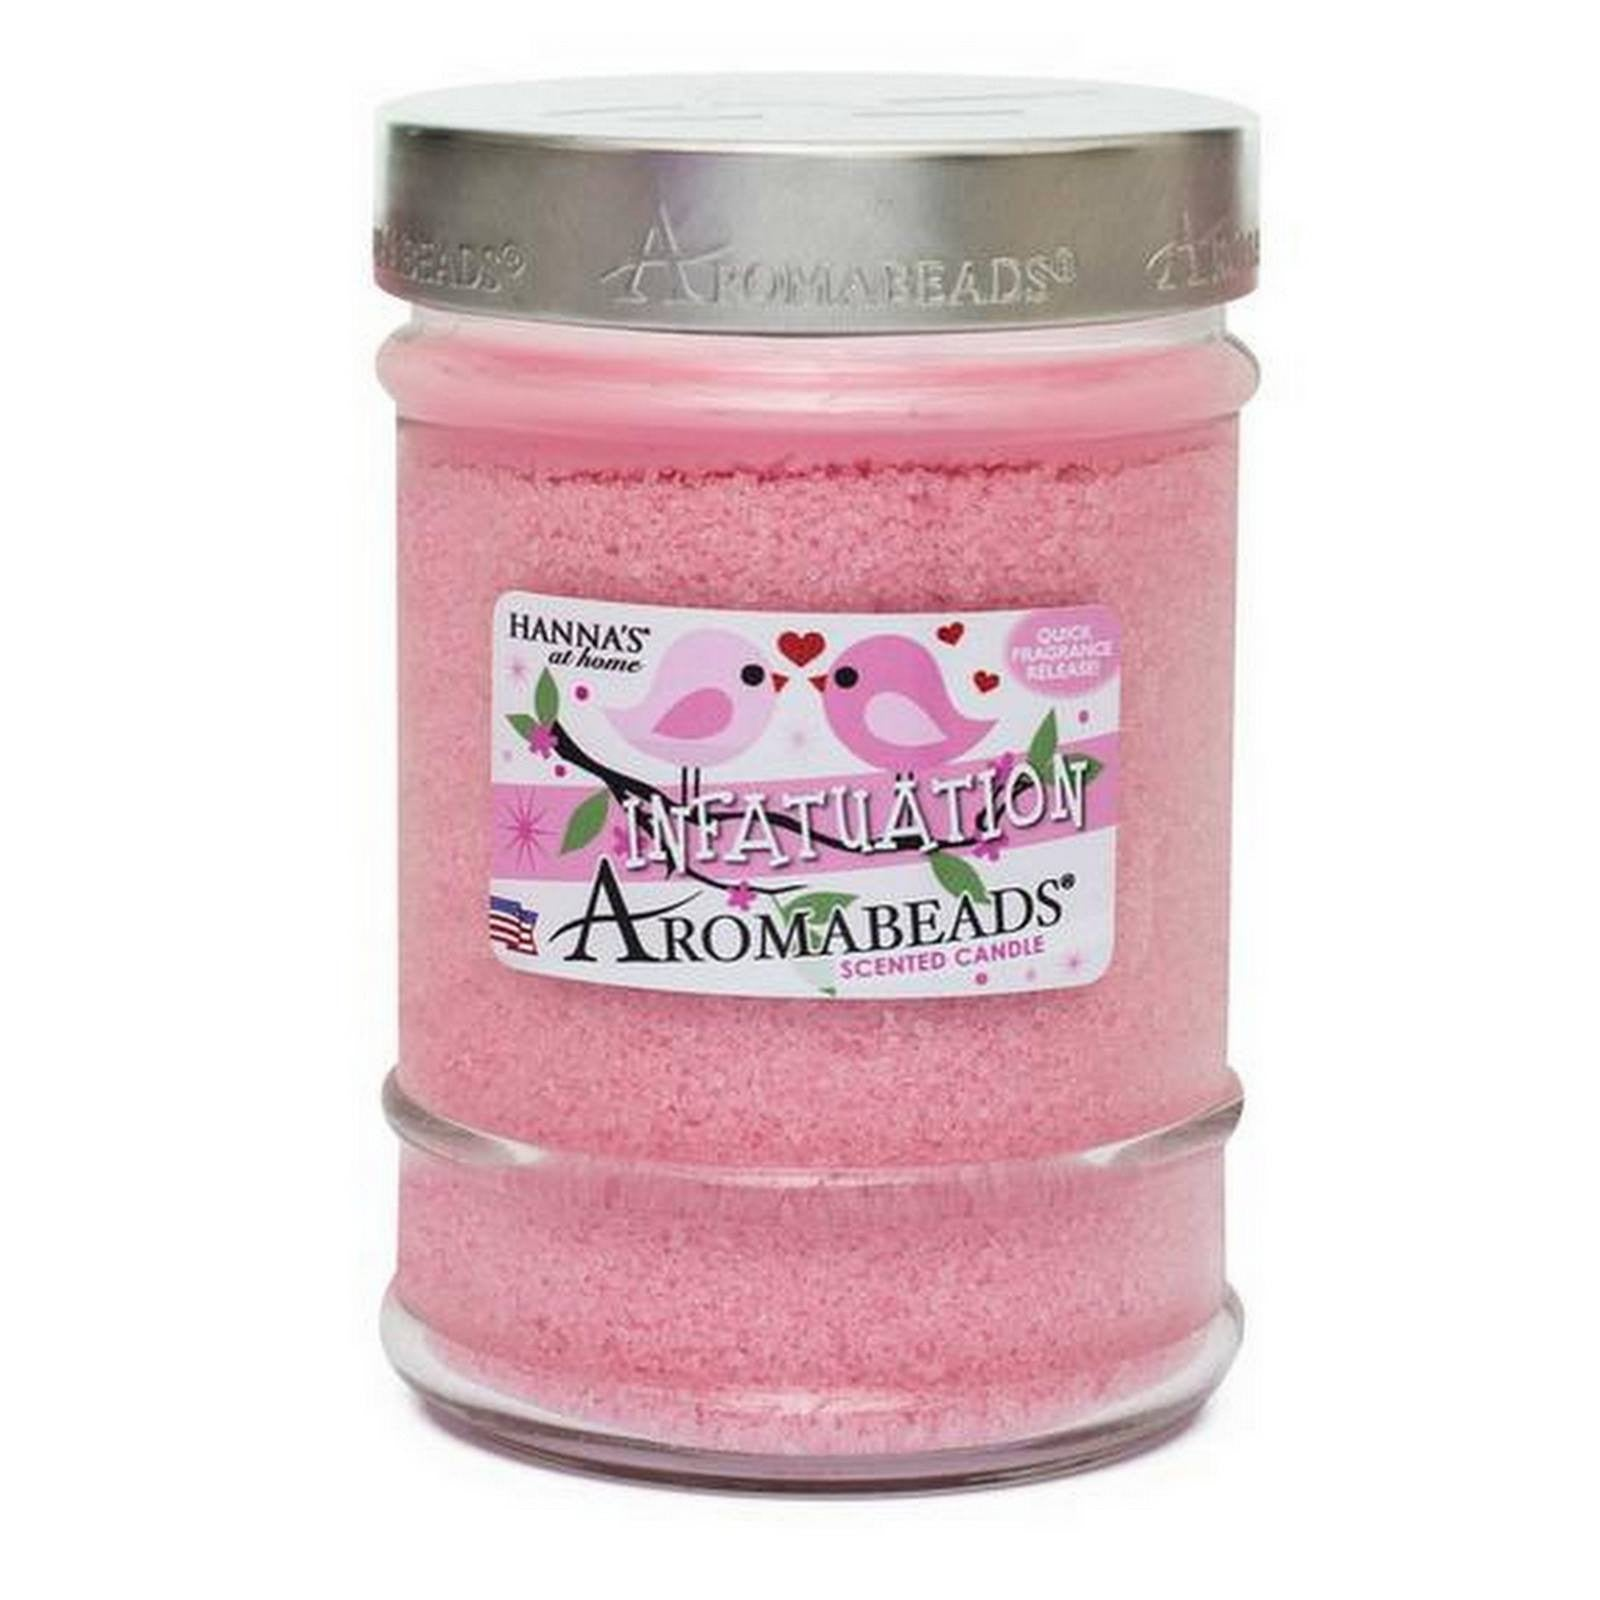 Valentine's Aromabeads Infatuation Scented Canister Candle - Candlemart.com